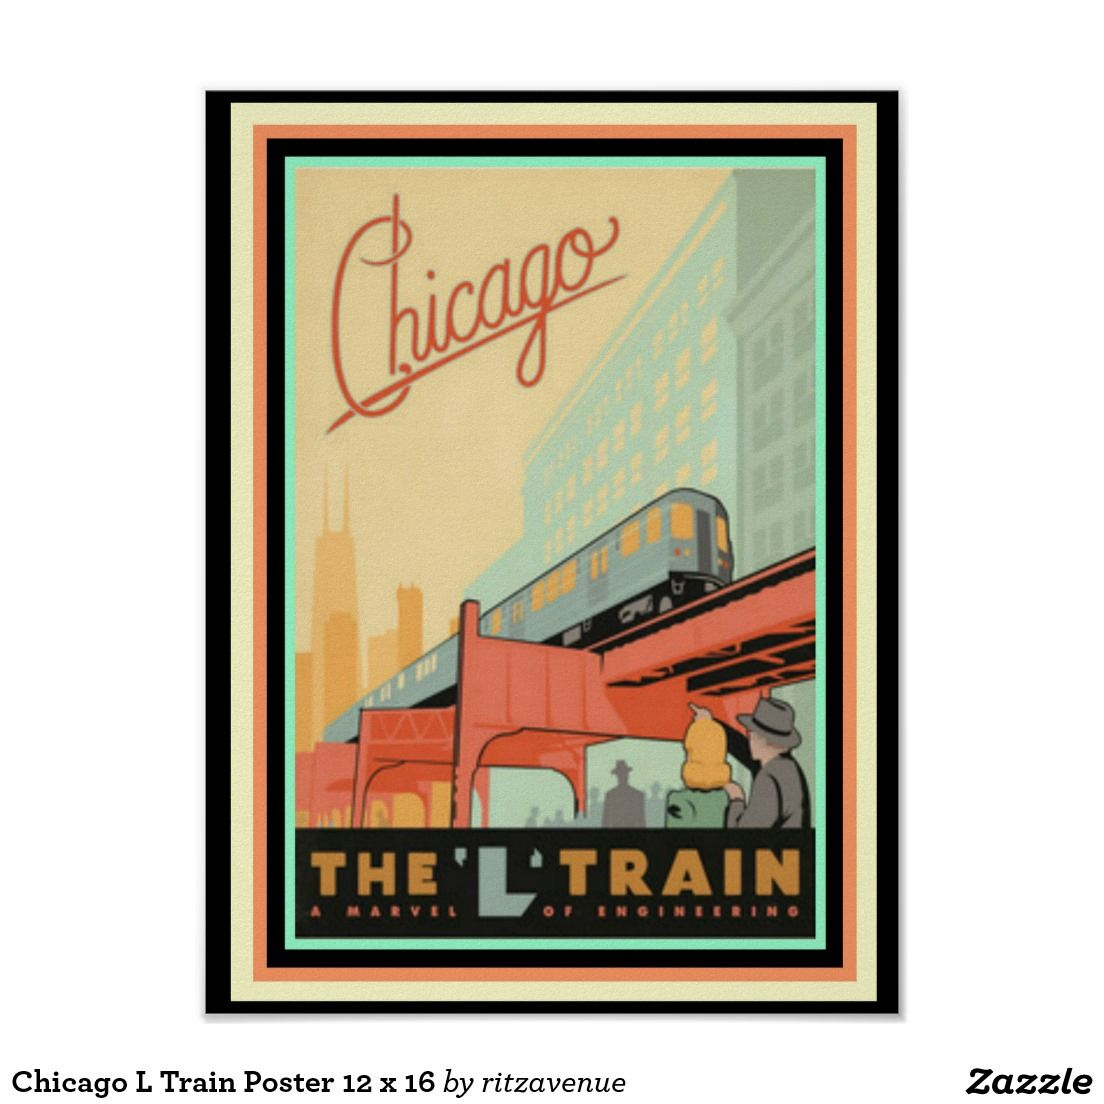 Chicago L Train Poster 12 x 16 $12.00 | Posters I Like | Pinterest ...